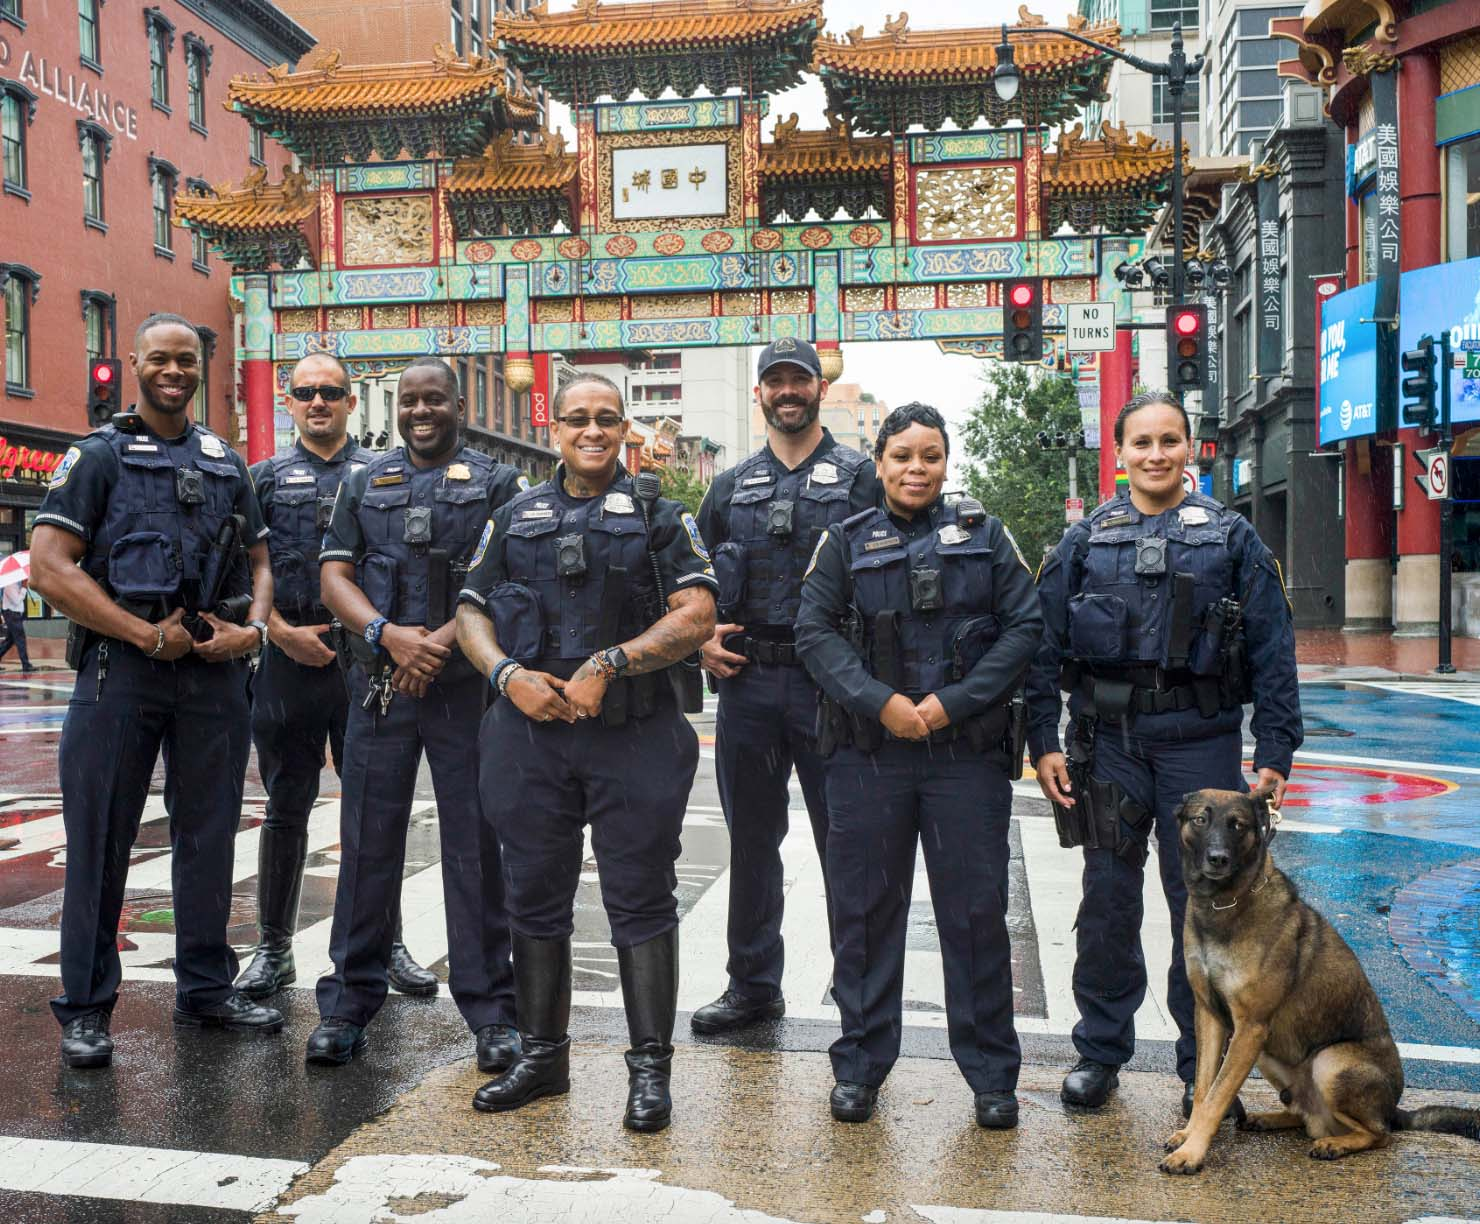 Officers from all seven MPD patrol districts pose in front of Chinatown's friendship archway. Photo courtesy MPD.